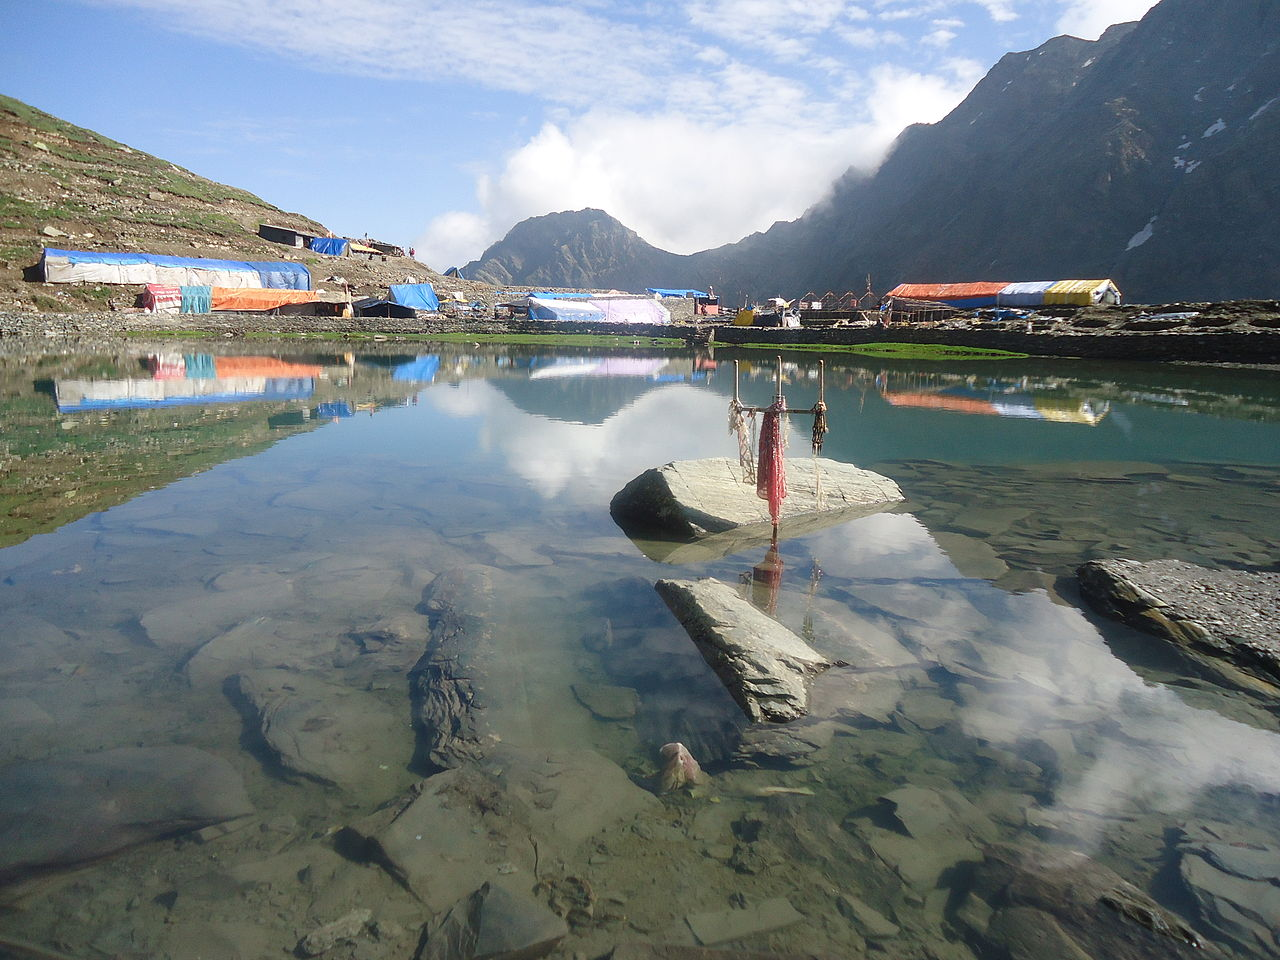 Manimahesh Lake - Place To See And Things To Do While In Chamba